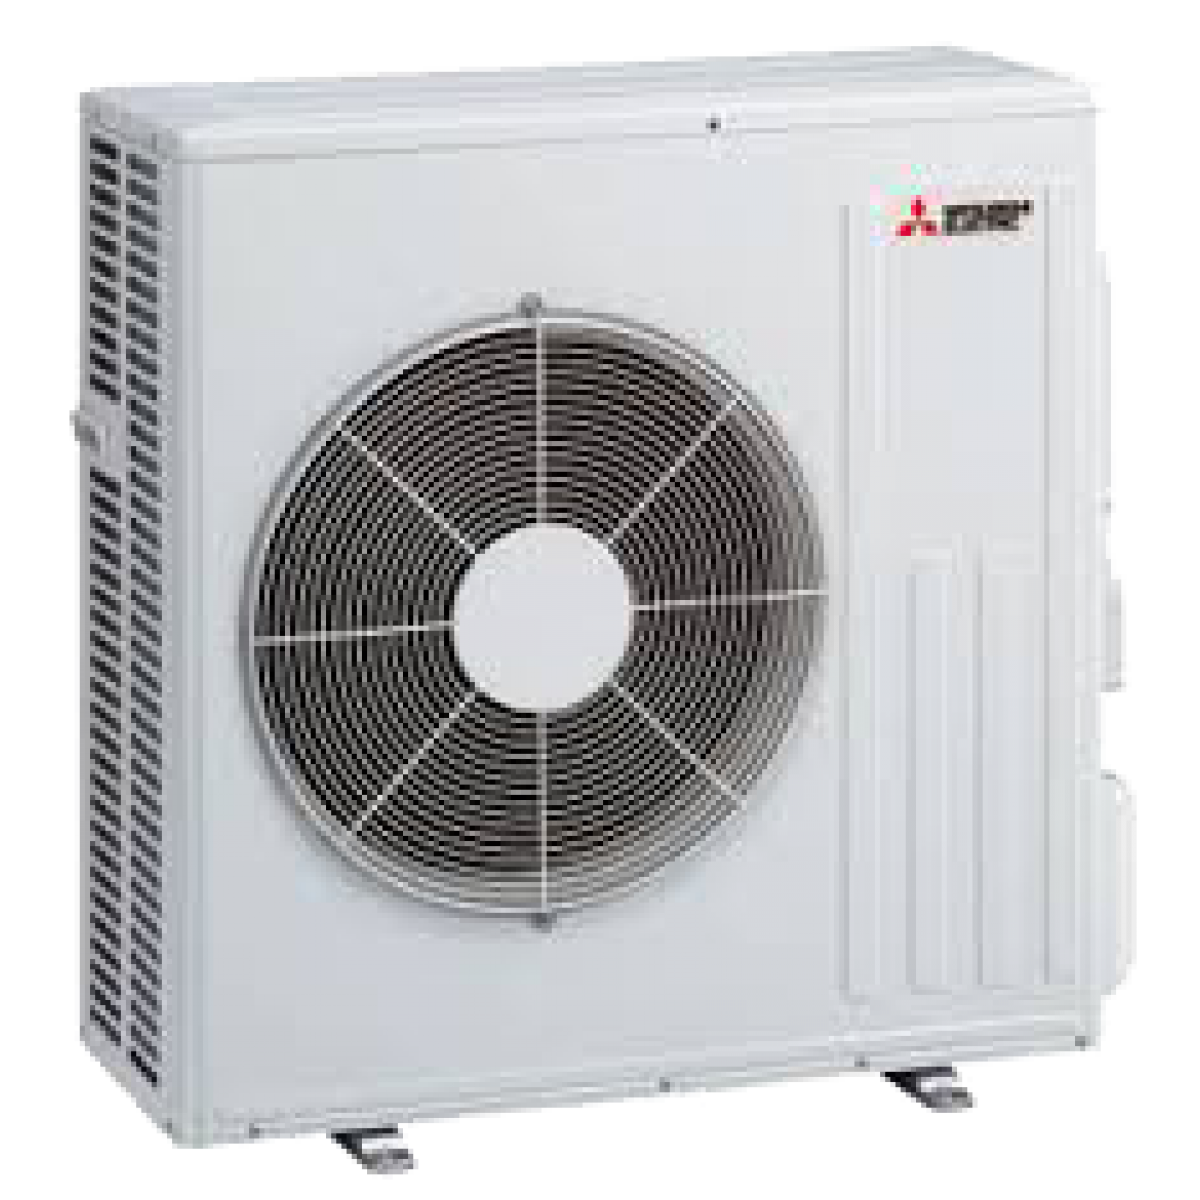 #7A5152 Mitsubishi 18K BTU 20.5 SEER Heat Pump System In Single  Brand New 5481 Mitsubishi Split System Heat Pump images with 1200x1200 px on helpvideos.info - Air Conditioners, Air Coolers and more